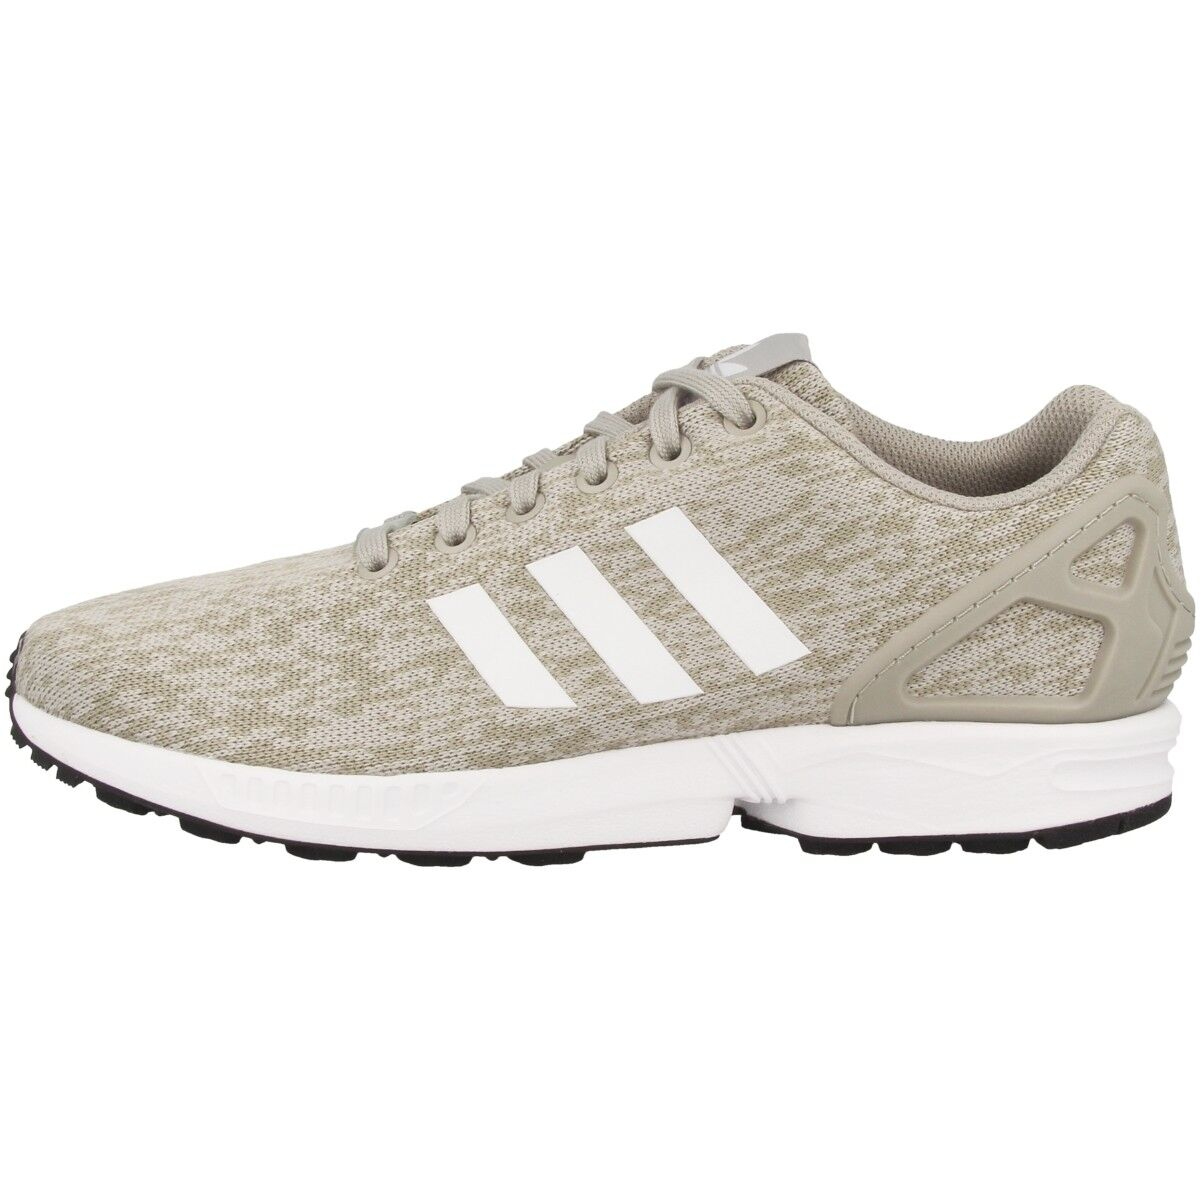 Adidas sesame ZX Flux Schuhe Originals Sneaker BY9424 sesame Adidas white ZX750 850 Torsion de6cad